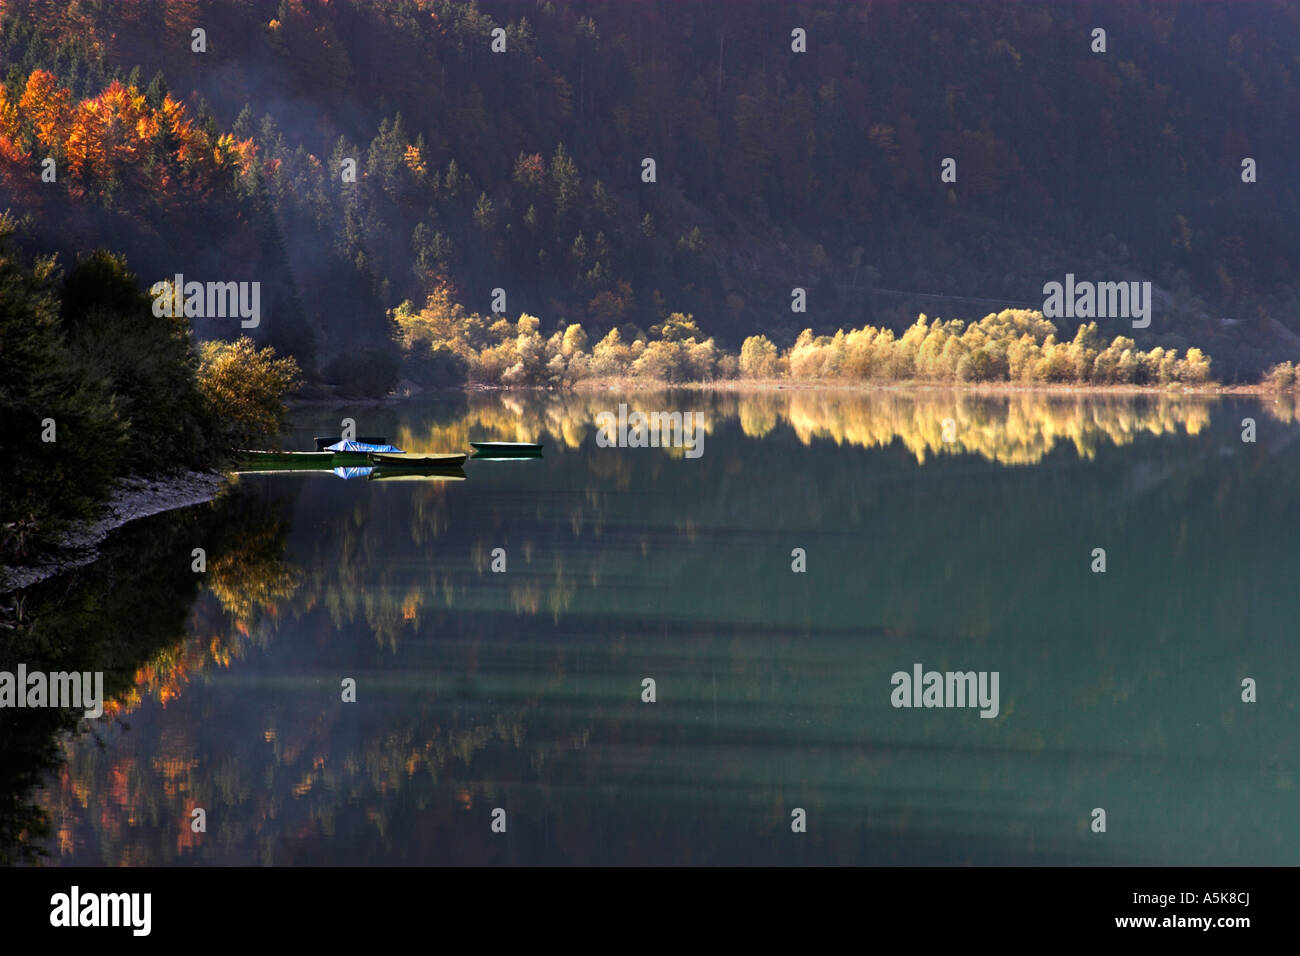 Automnal Sea in the Early morning glow, 3 three rowboats, Bavaria, Germany - Stock Image